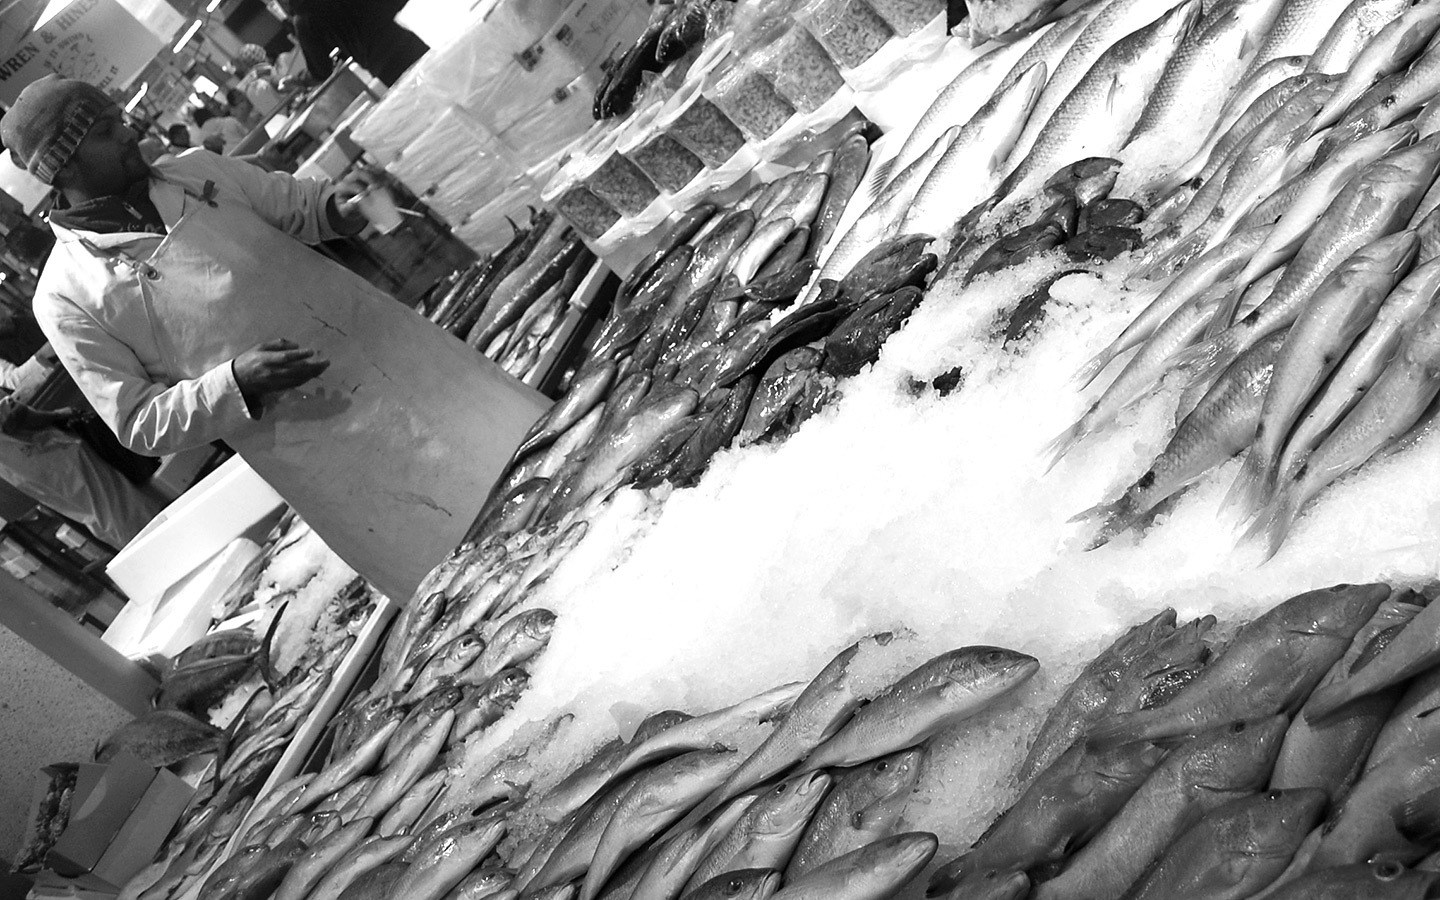 Seafood school at Billingsgate fish market in London